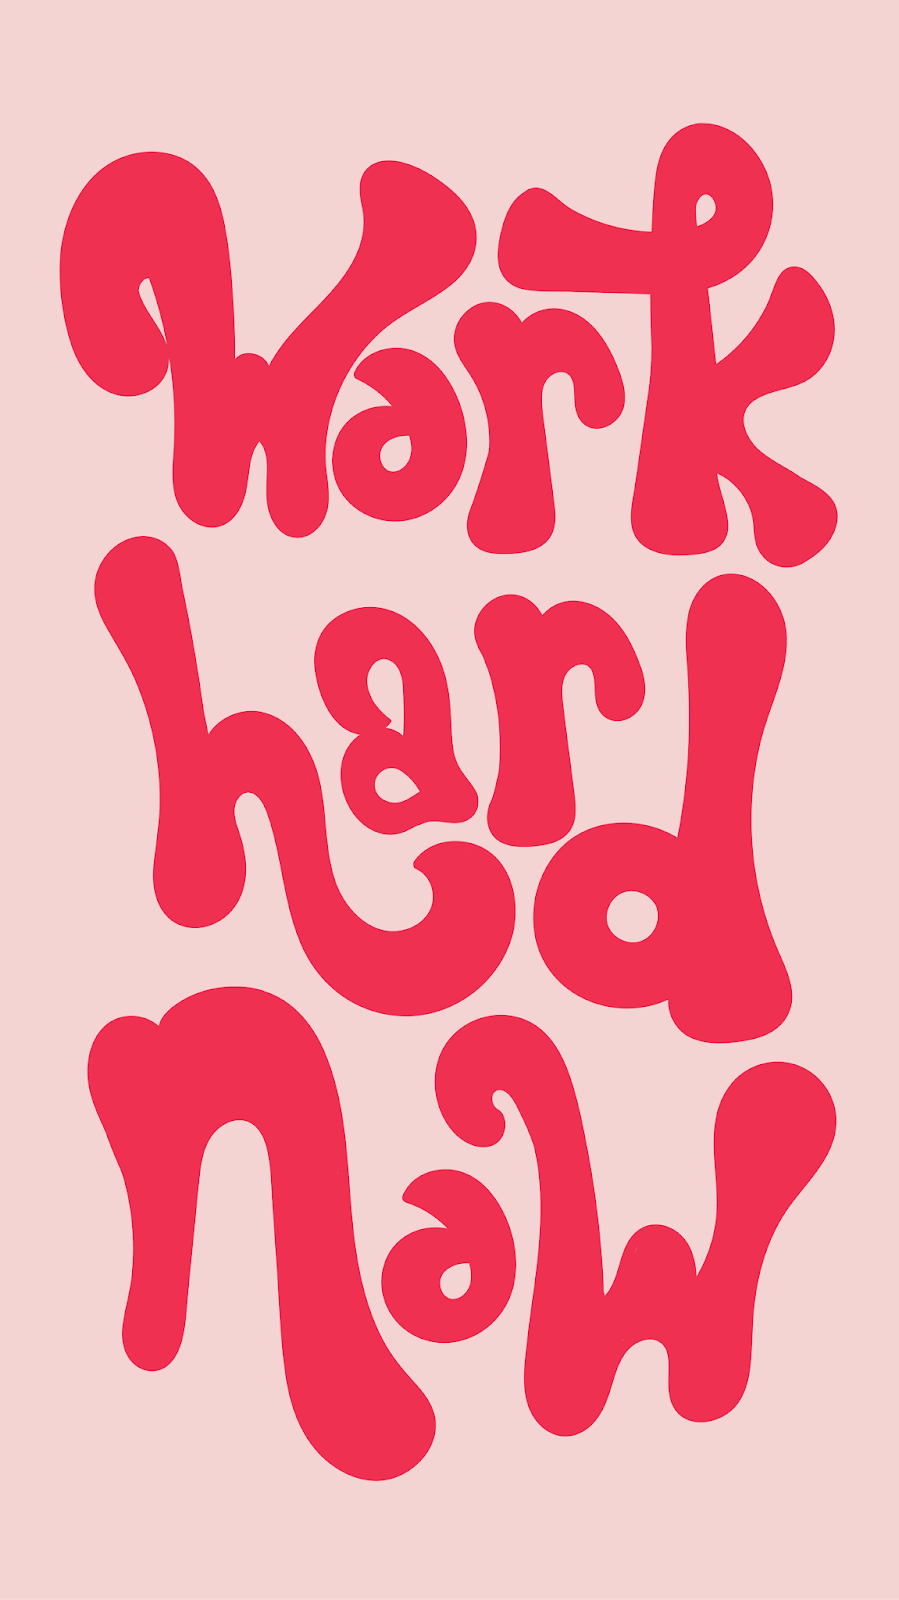 """work hard now"" 70s typography retro groovy font typeface graphic phone background"